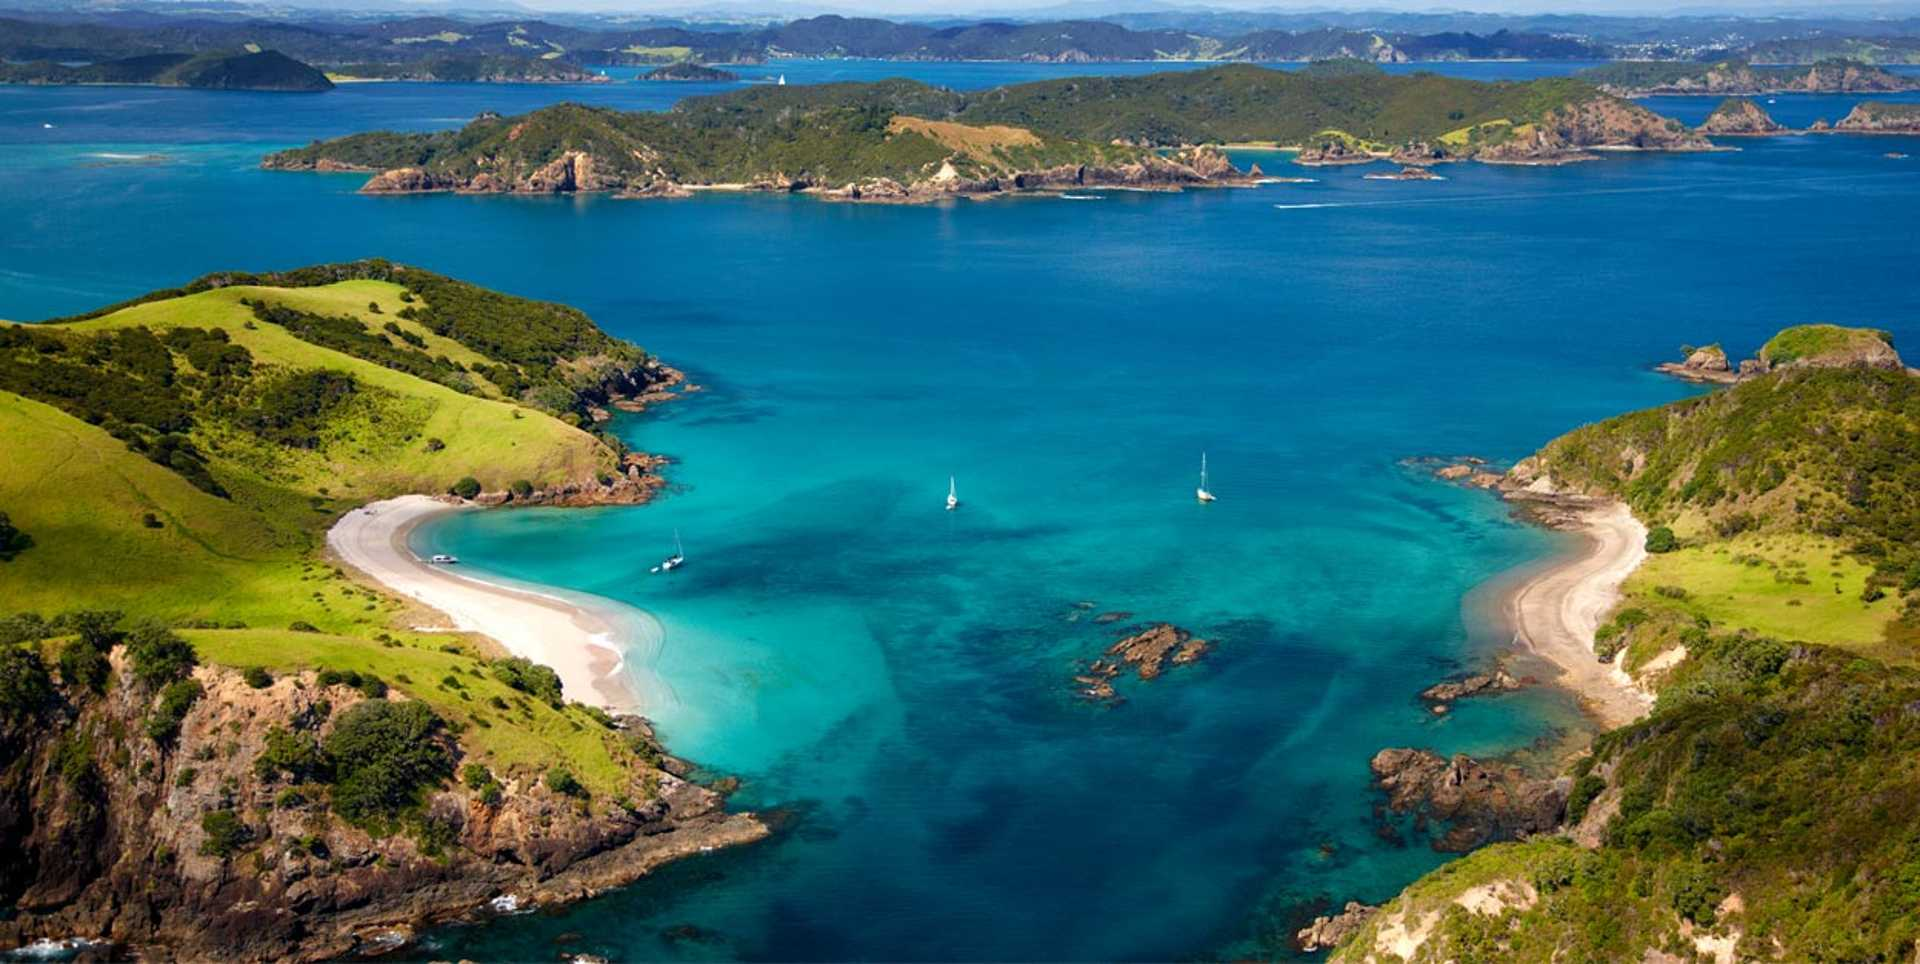 Bird's eye view of the turquoise waters at Bay of Islands.